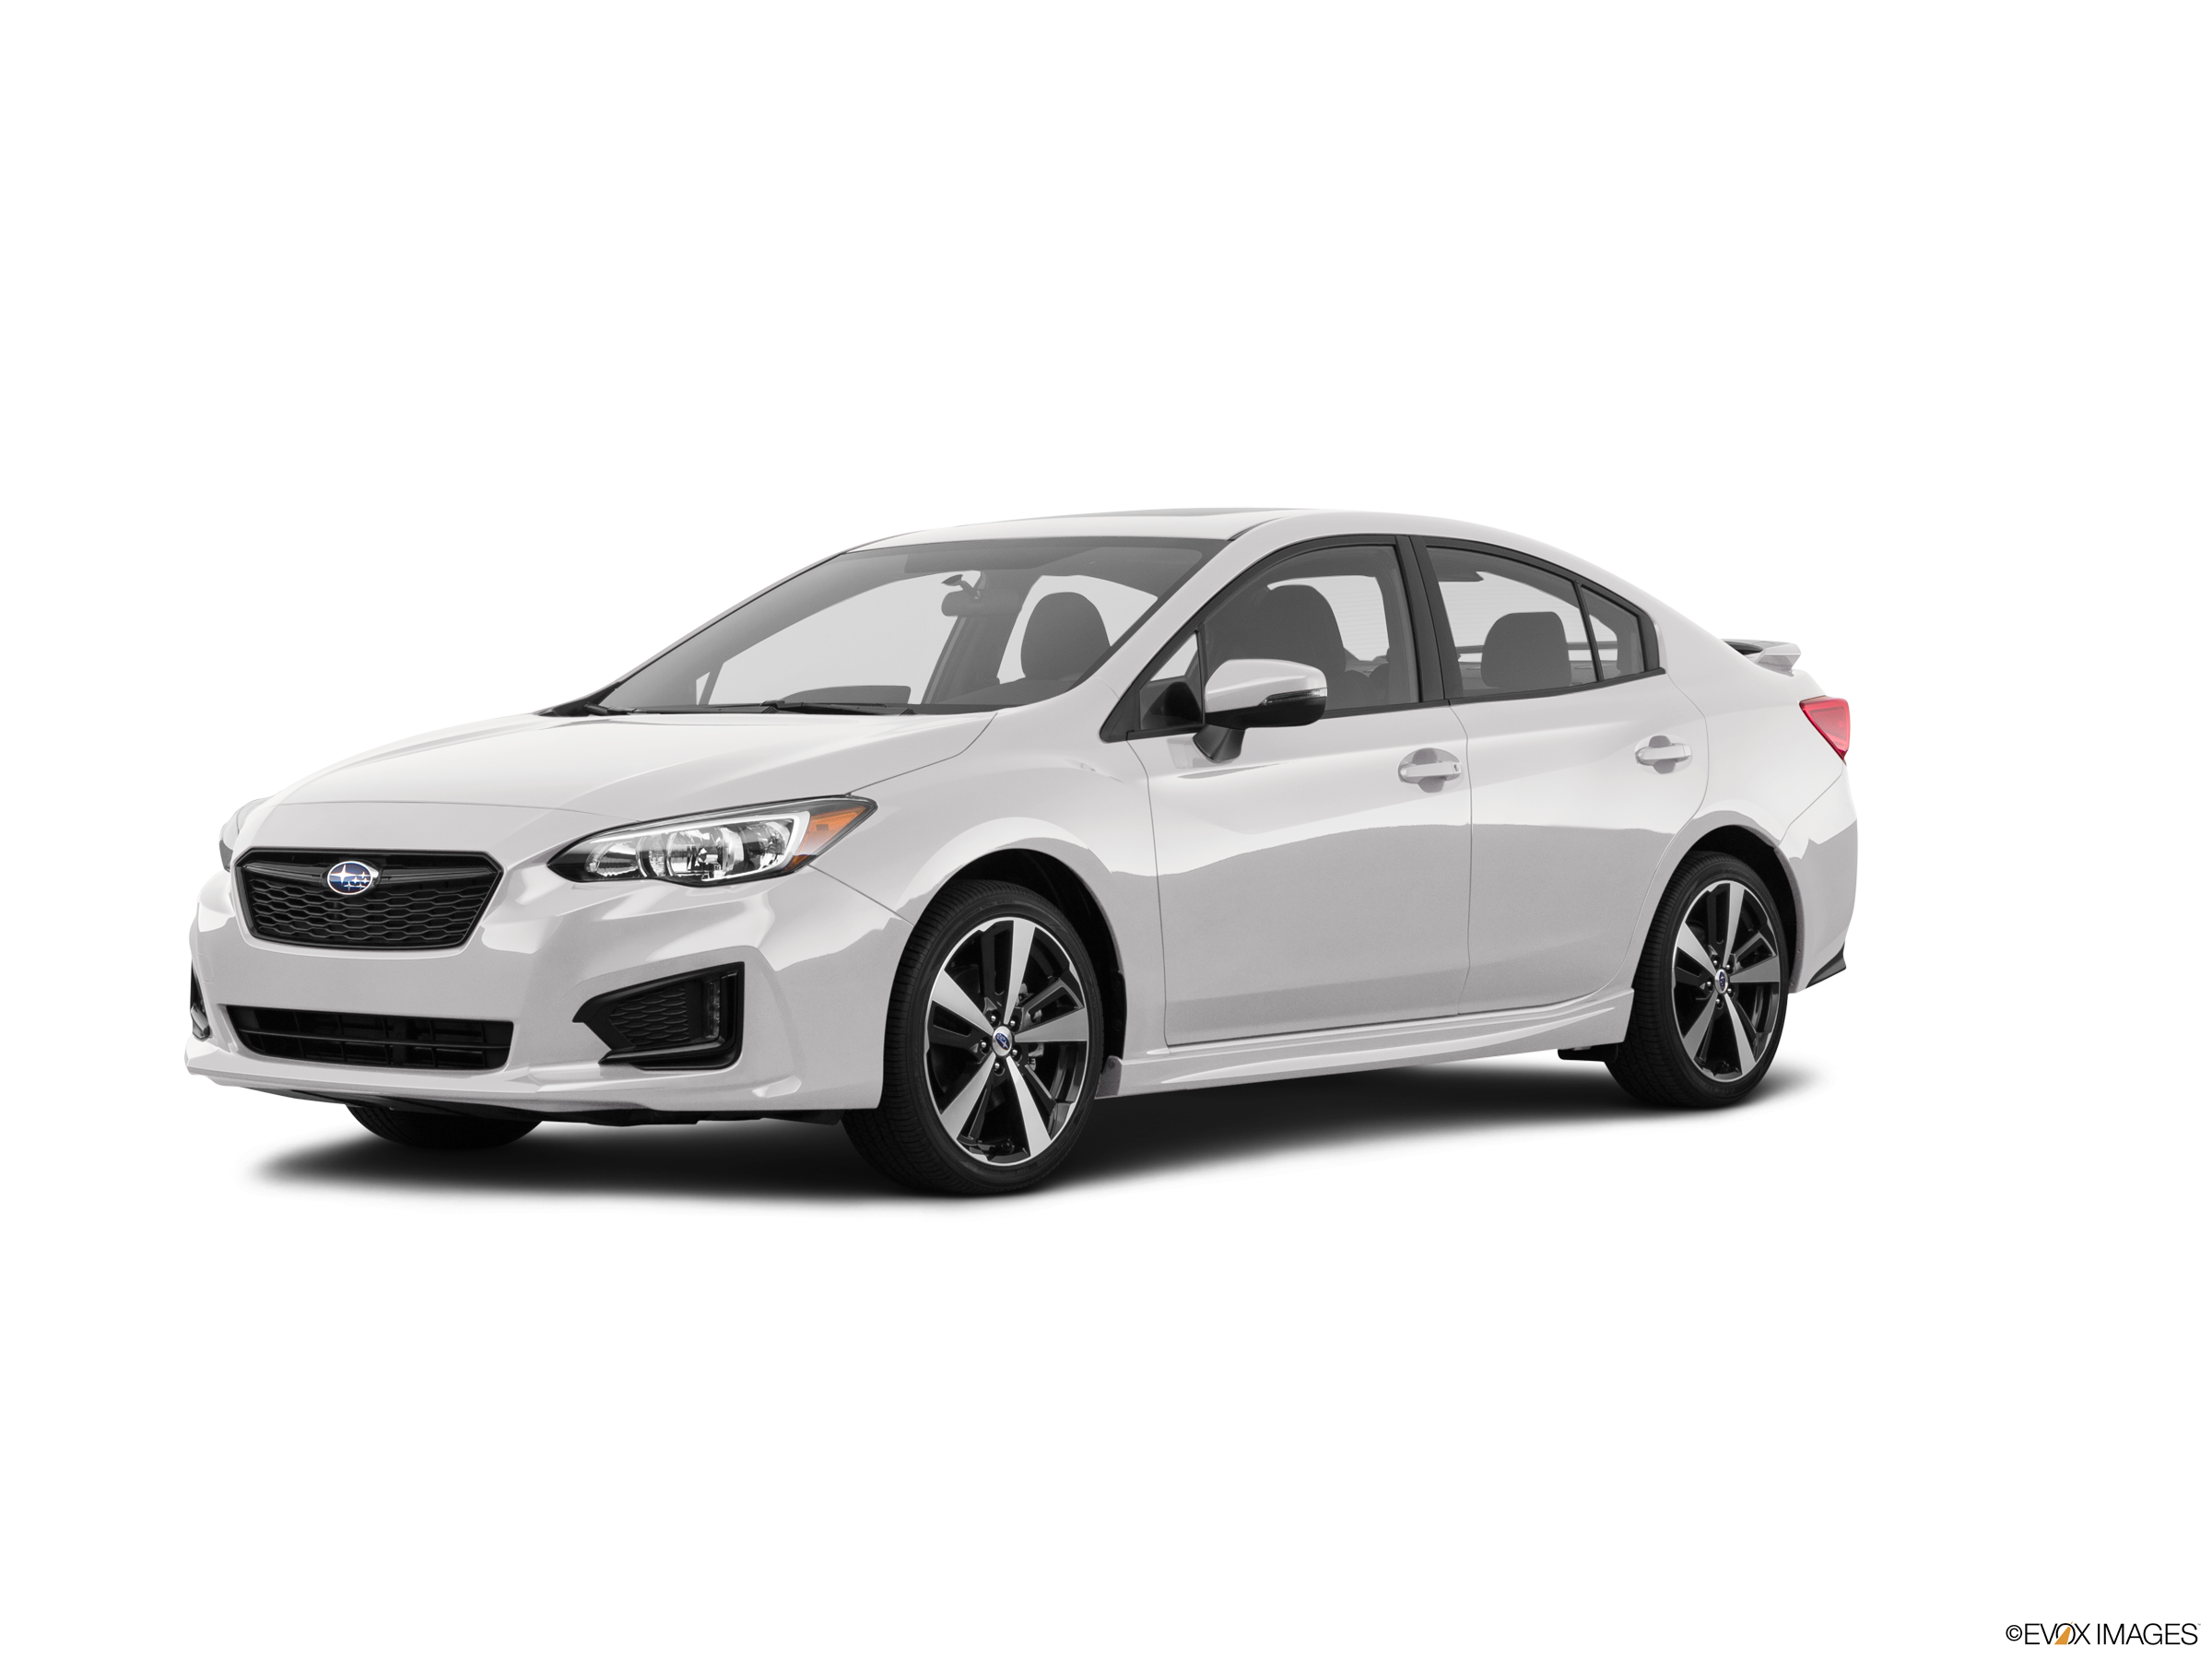 Top Expert Rated Sedans of 2019 - 2019 Subaru Impreza